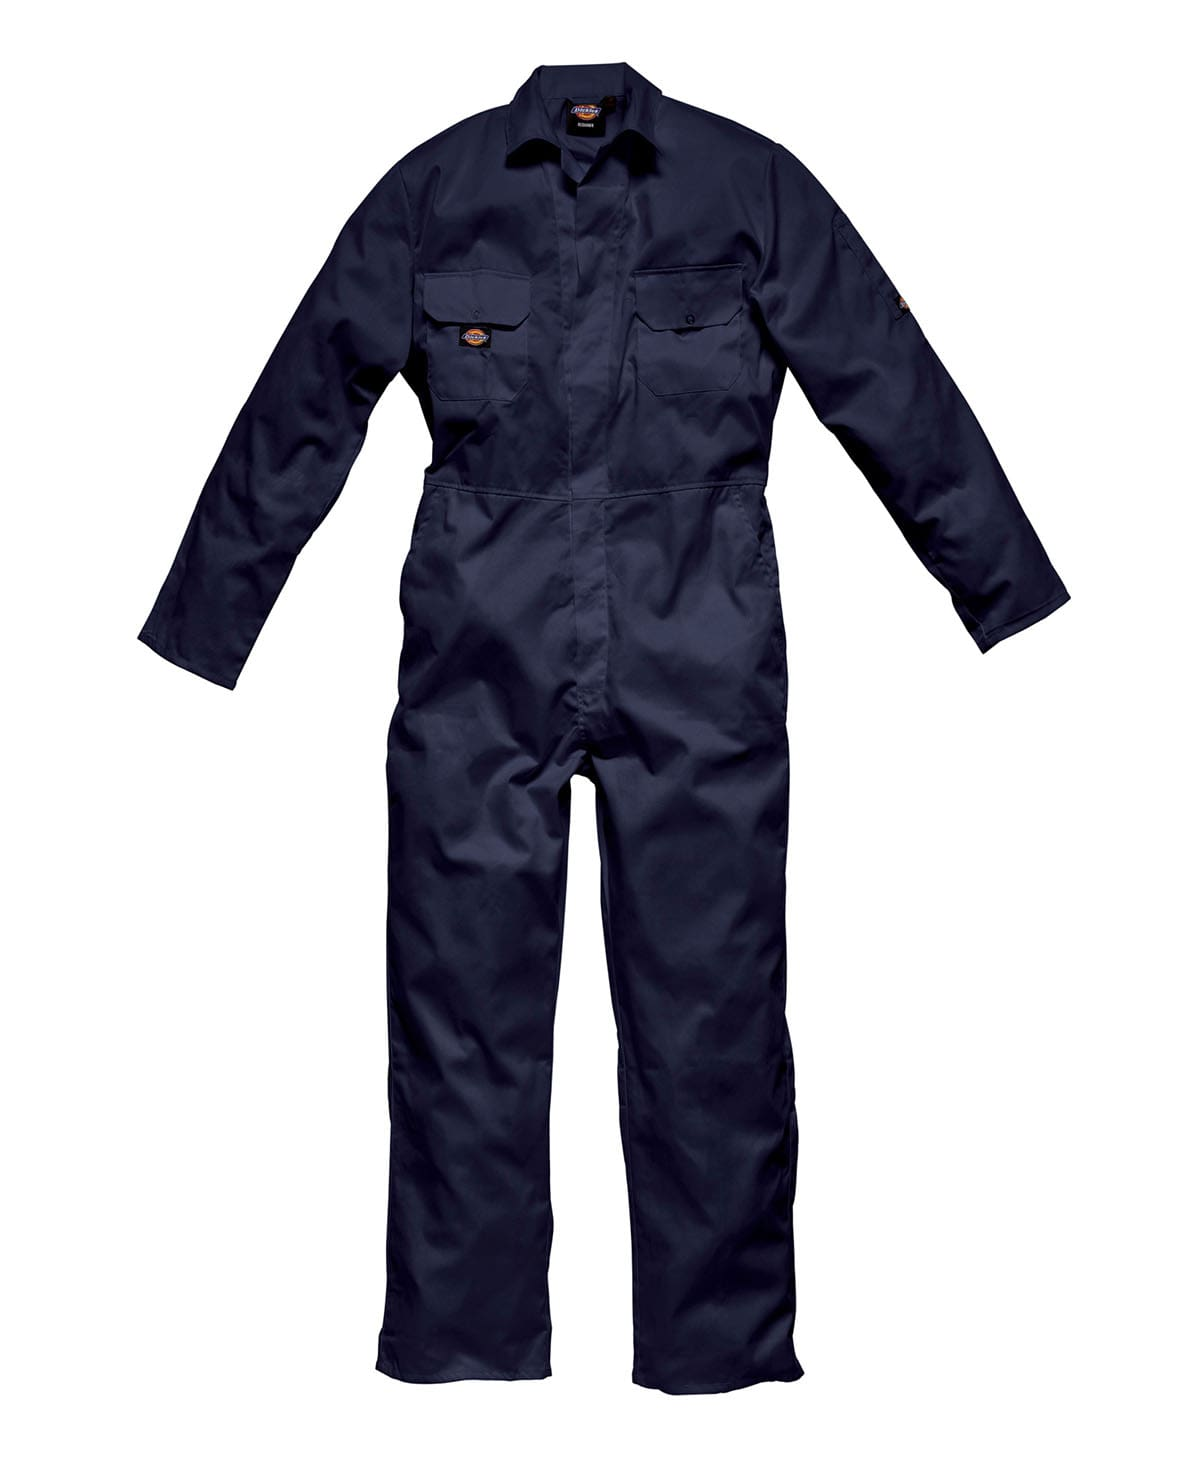 Workwear Overalls and Coveralls that can be Branded with Your Design or Logo Promoting You and Your Business